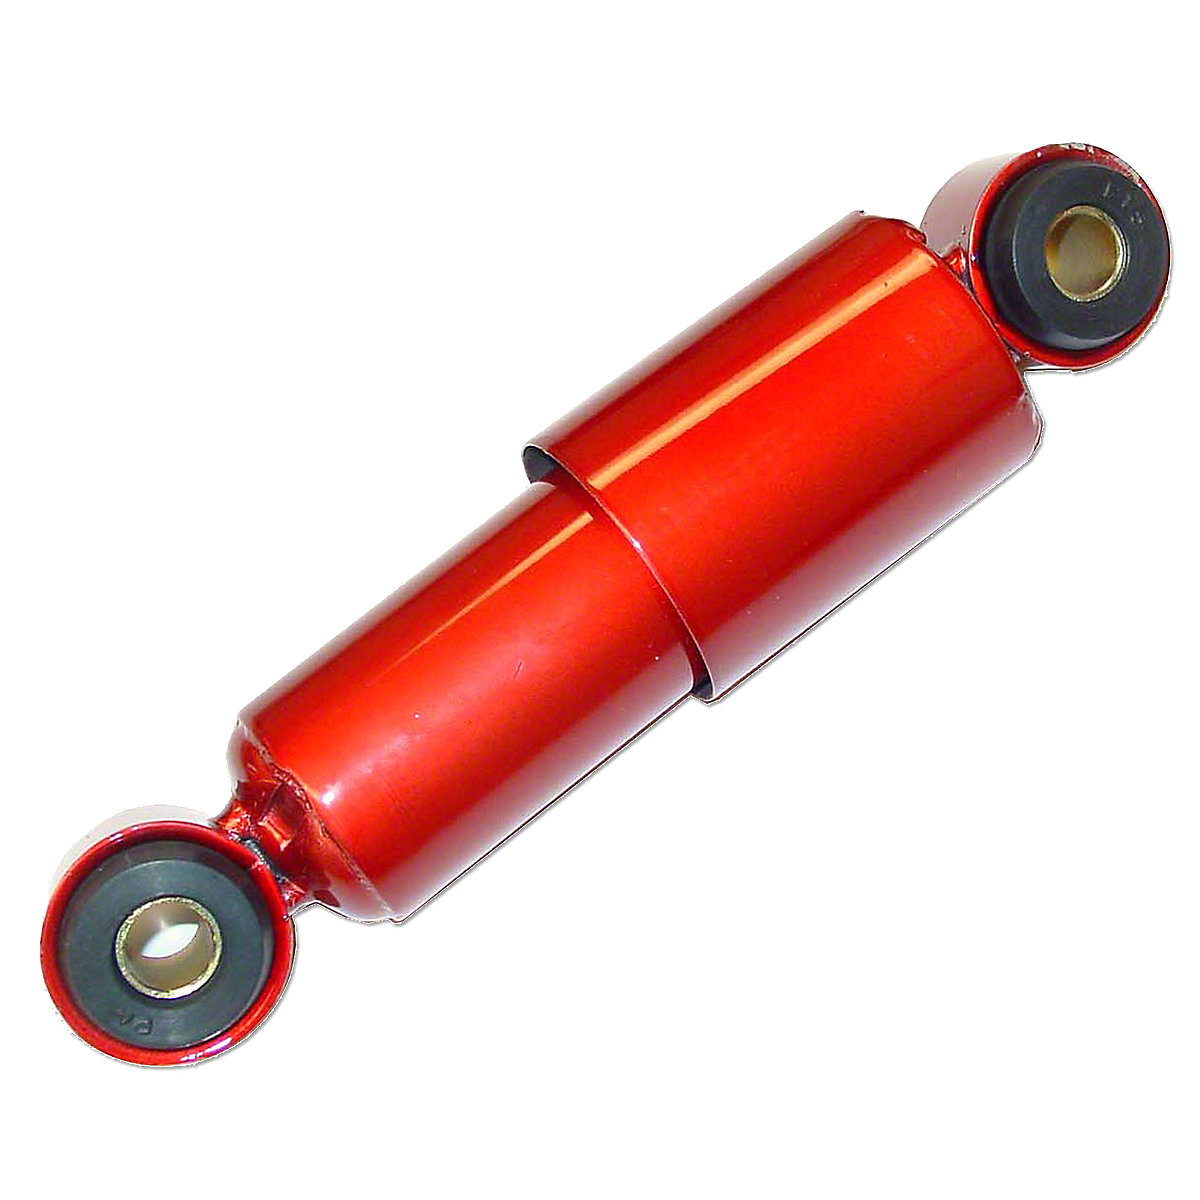 Mid Mounted Tractor Seat Shock Absorber For Allis Chalmers: B, C, CA, RC, U, WC, WF.